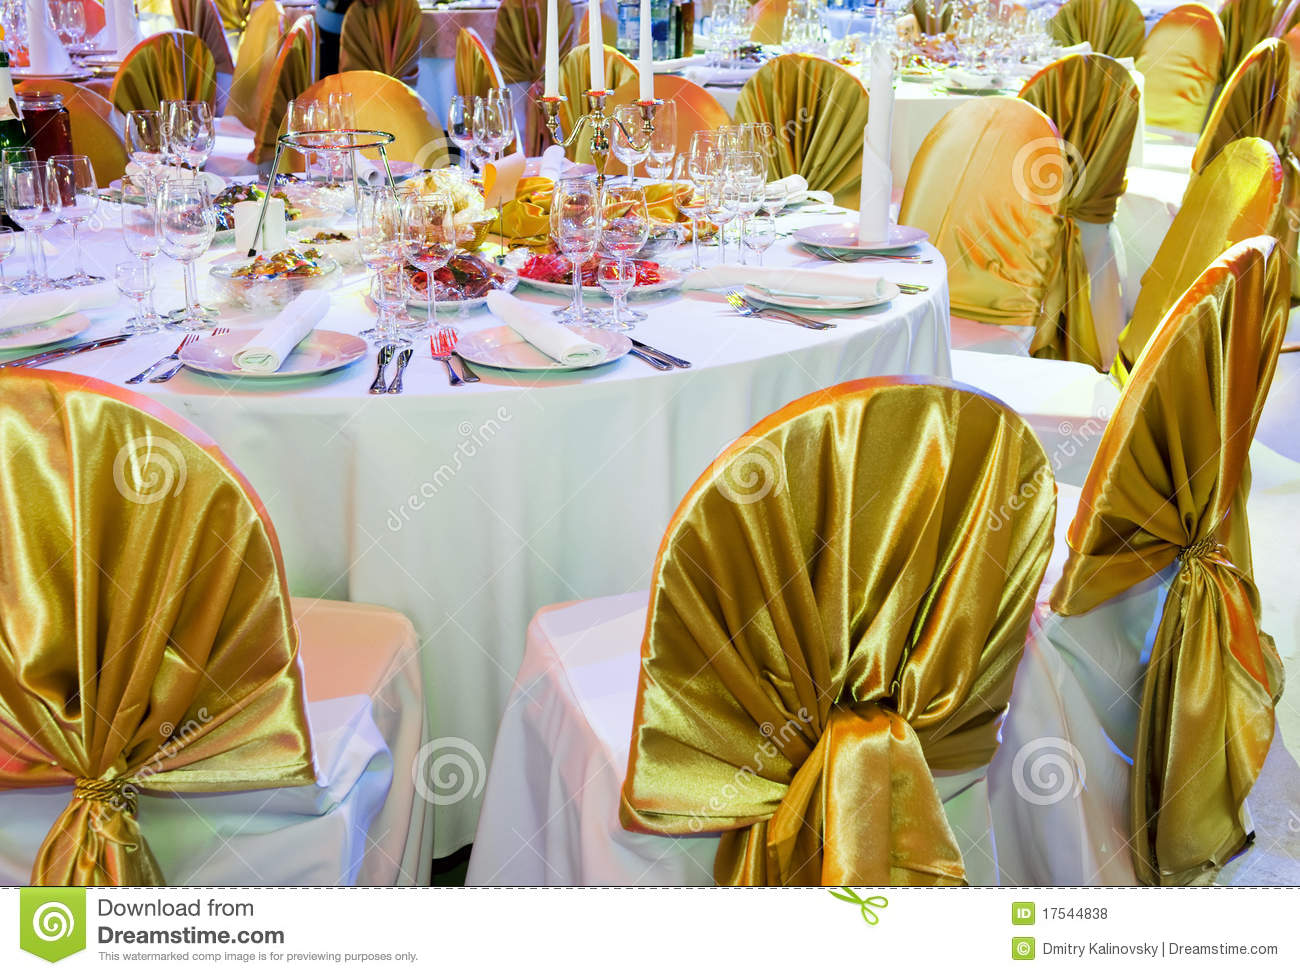 Catering service table decoration stock photo image for Decoration images